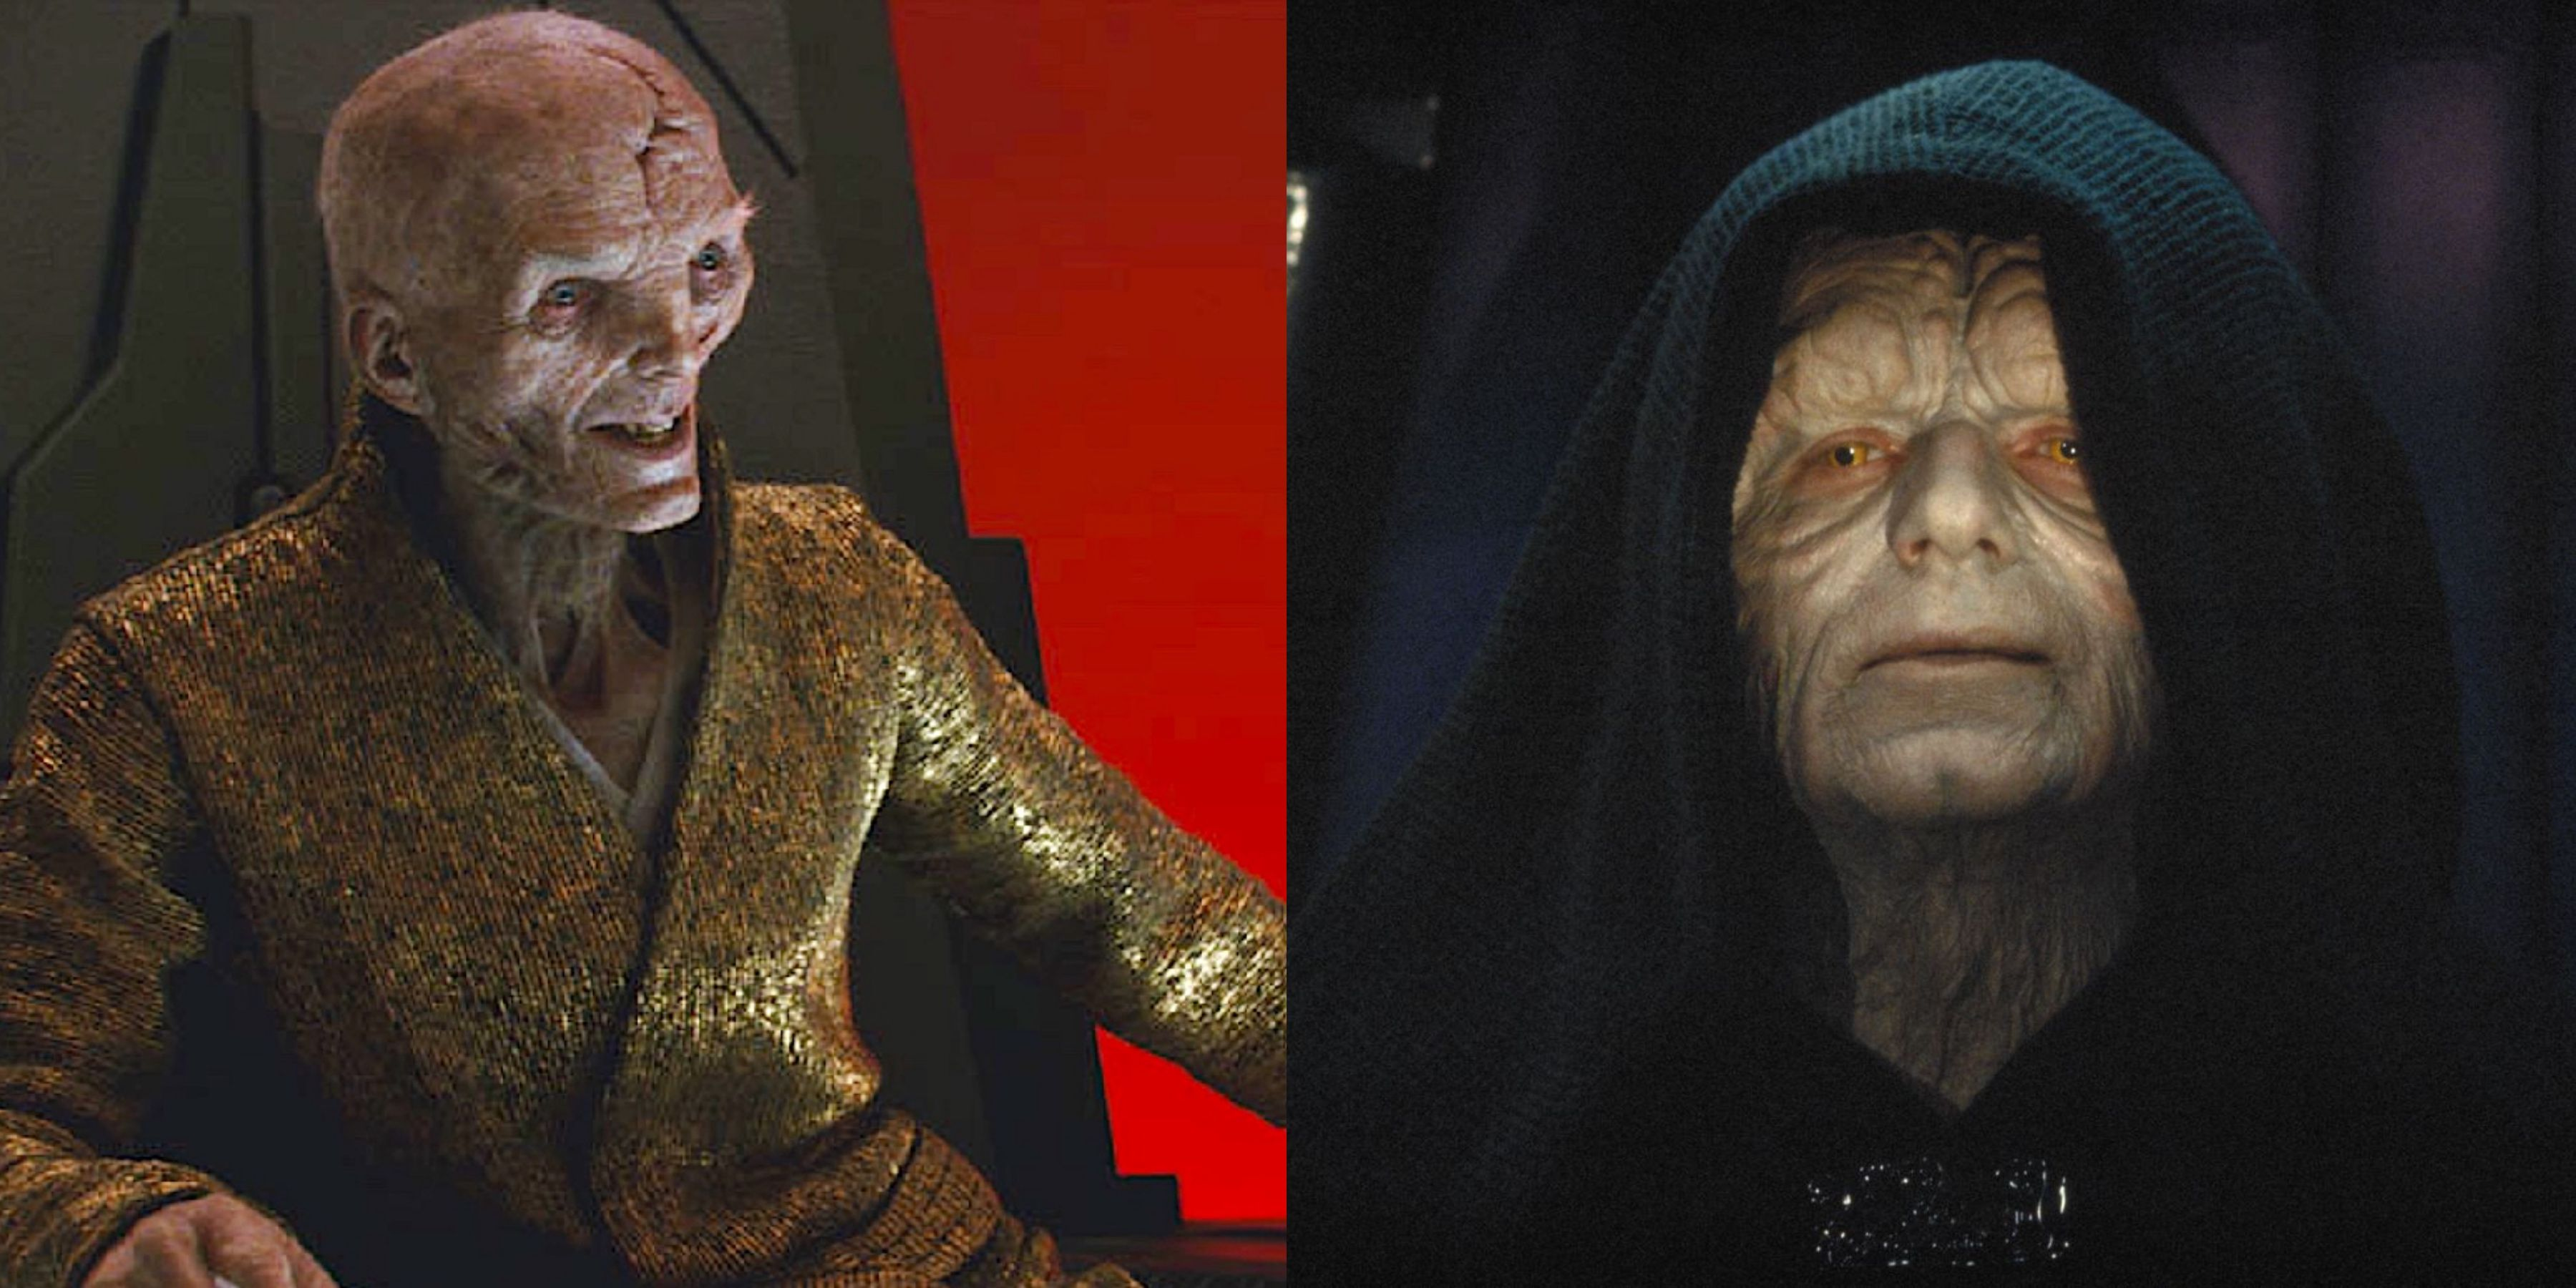 Star Wars 9 Palpatine Theory How The Rise Of Skywalker Connects Plagueis To Kylo Ren And Snoke